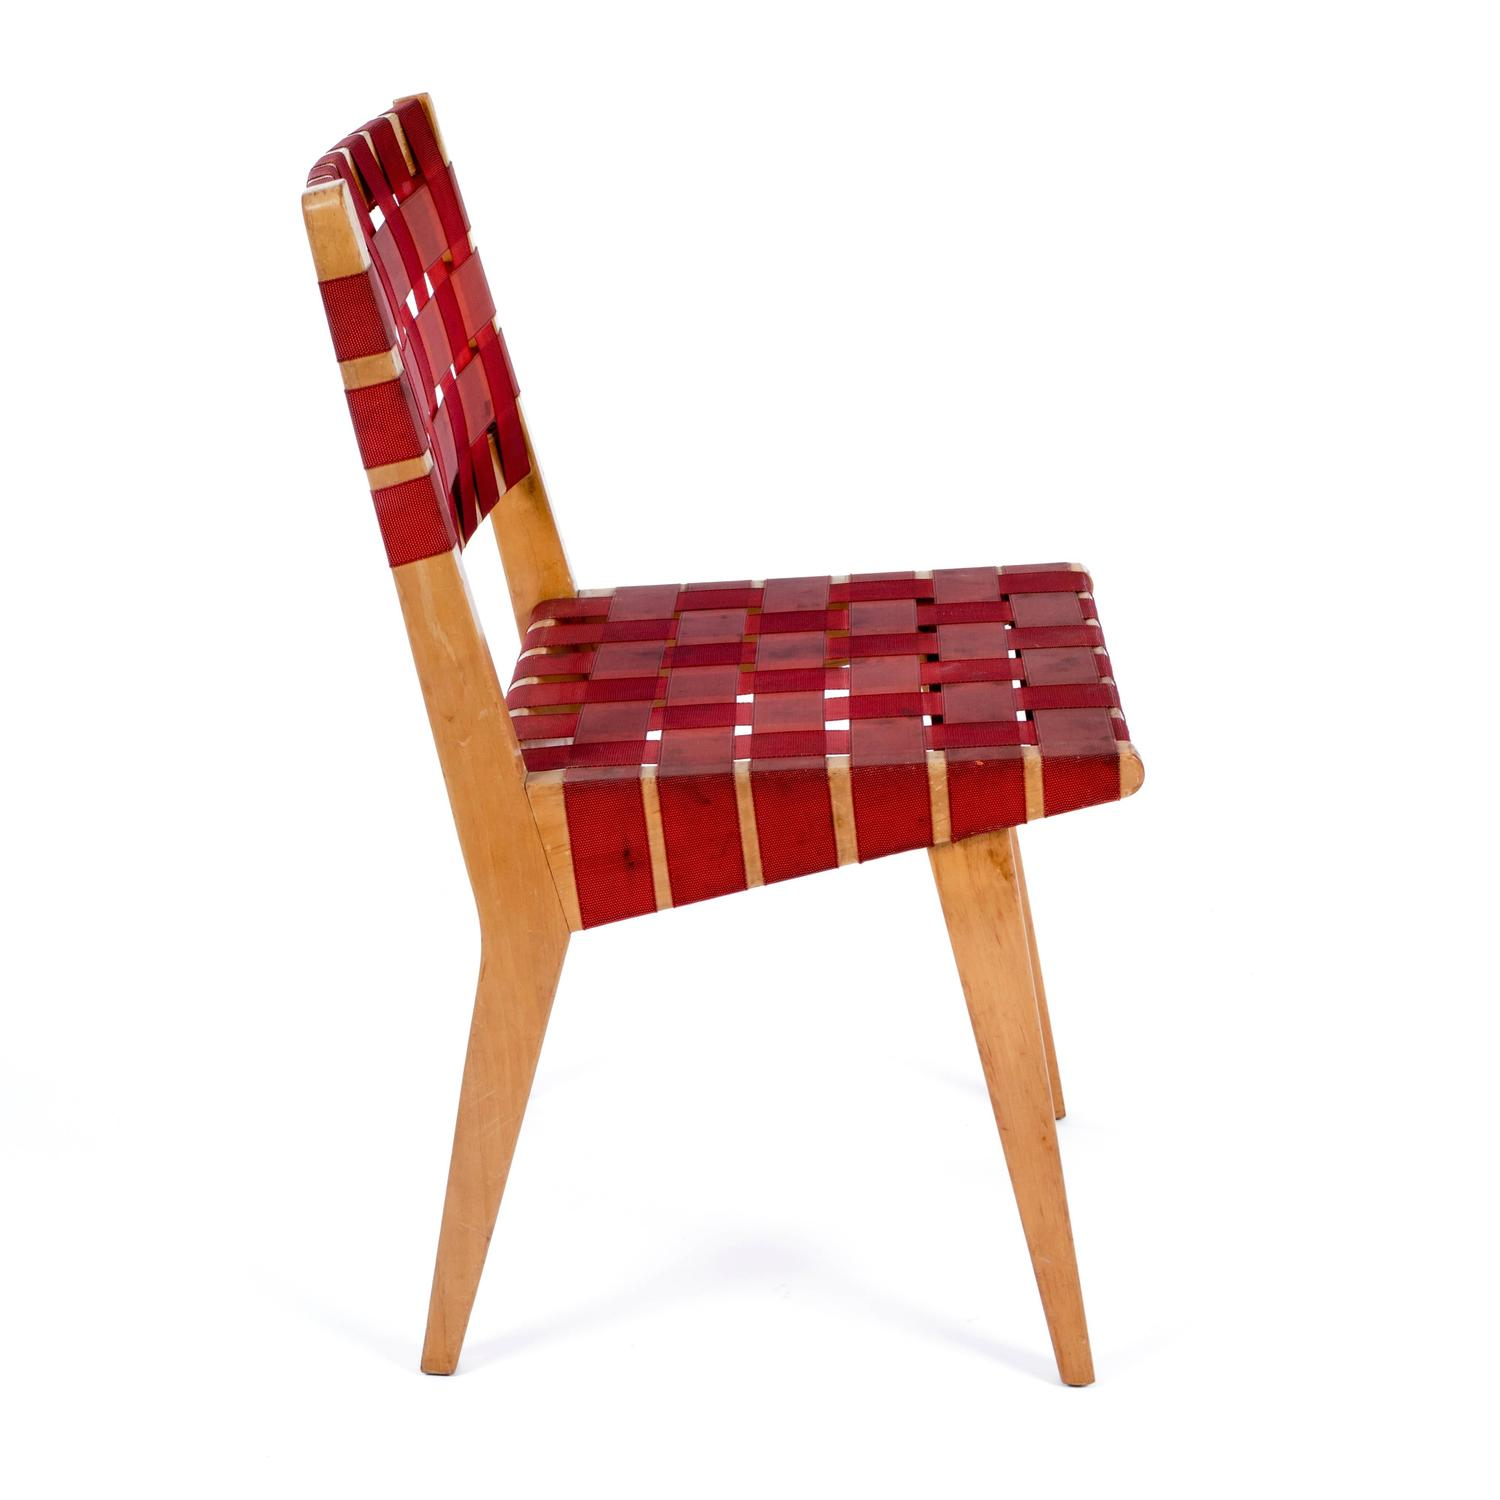 Early jens risom side chair for knoll for sale at 1stdibs - Jens risom side chair ...